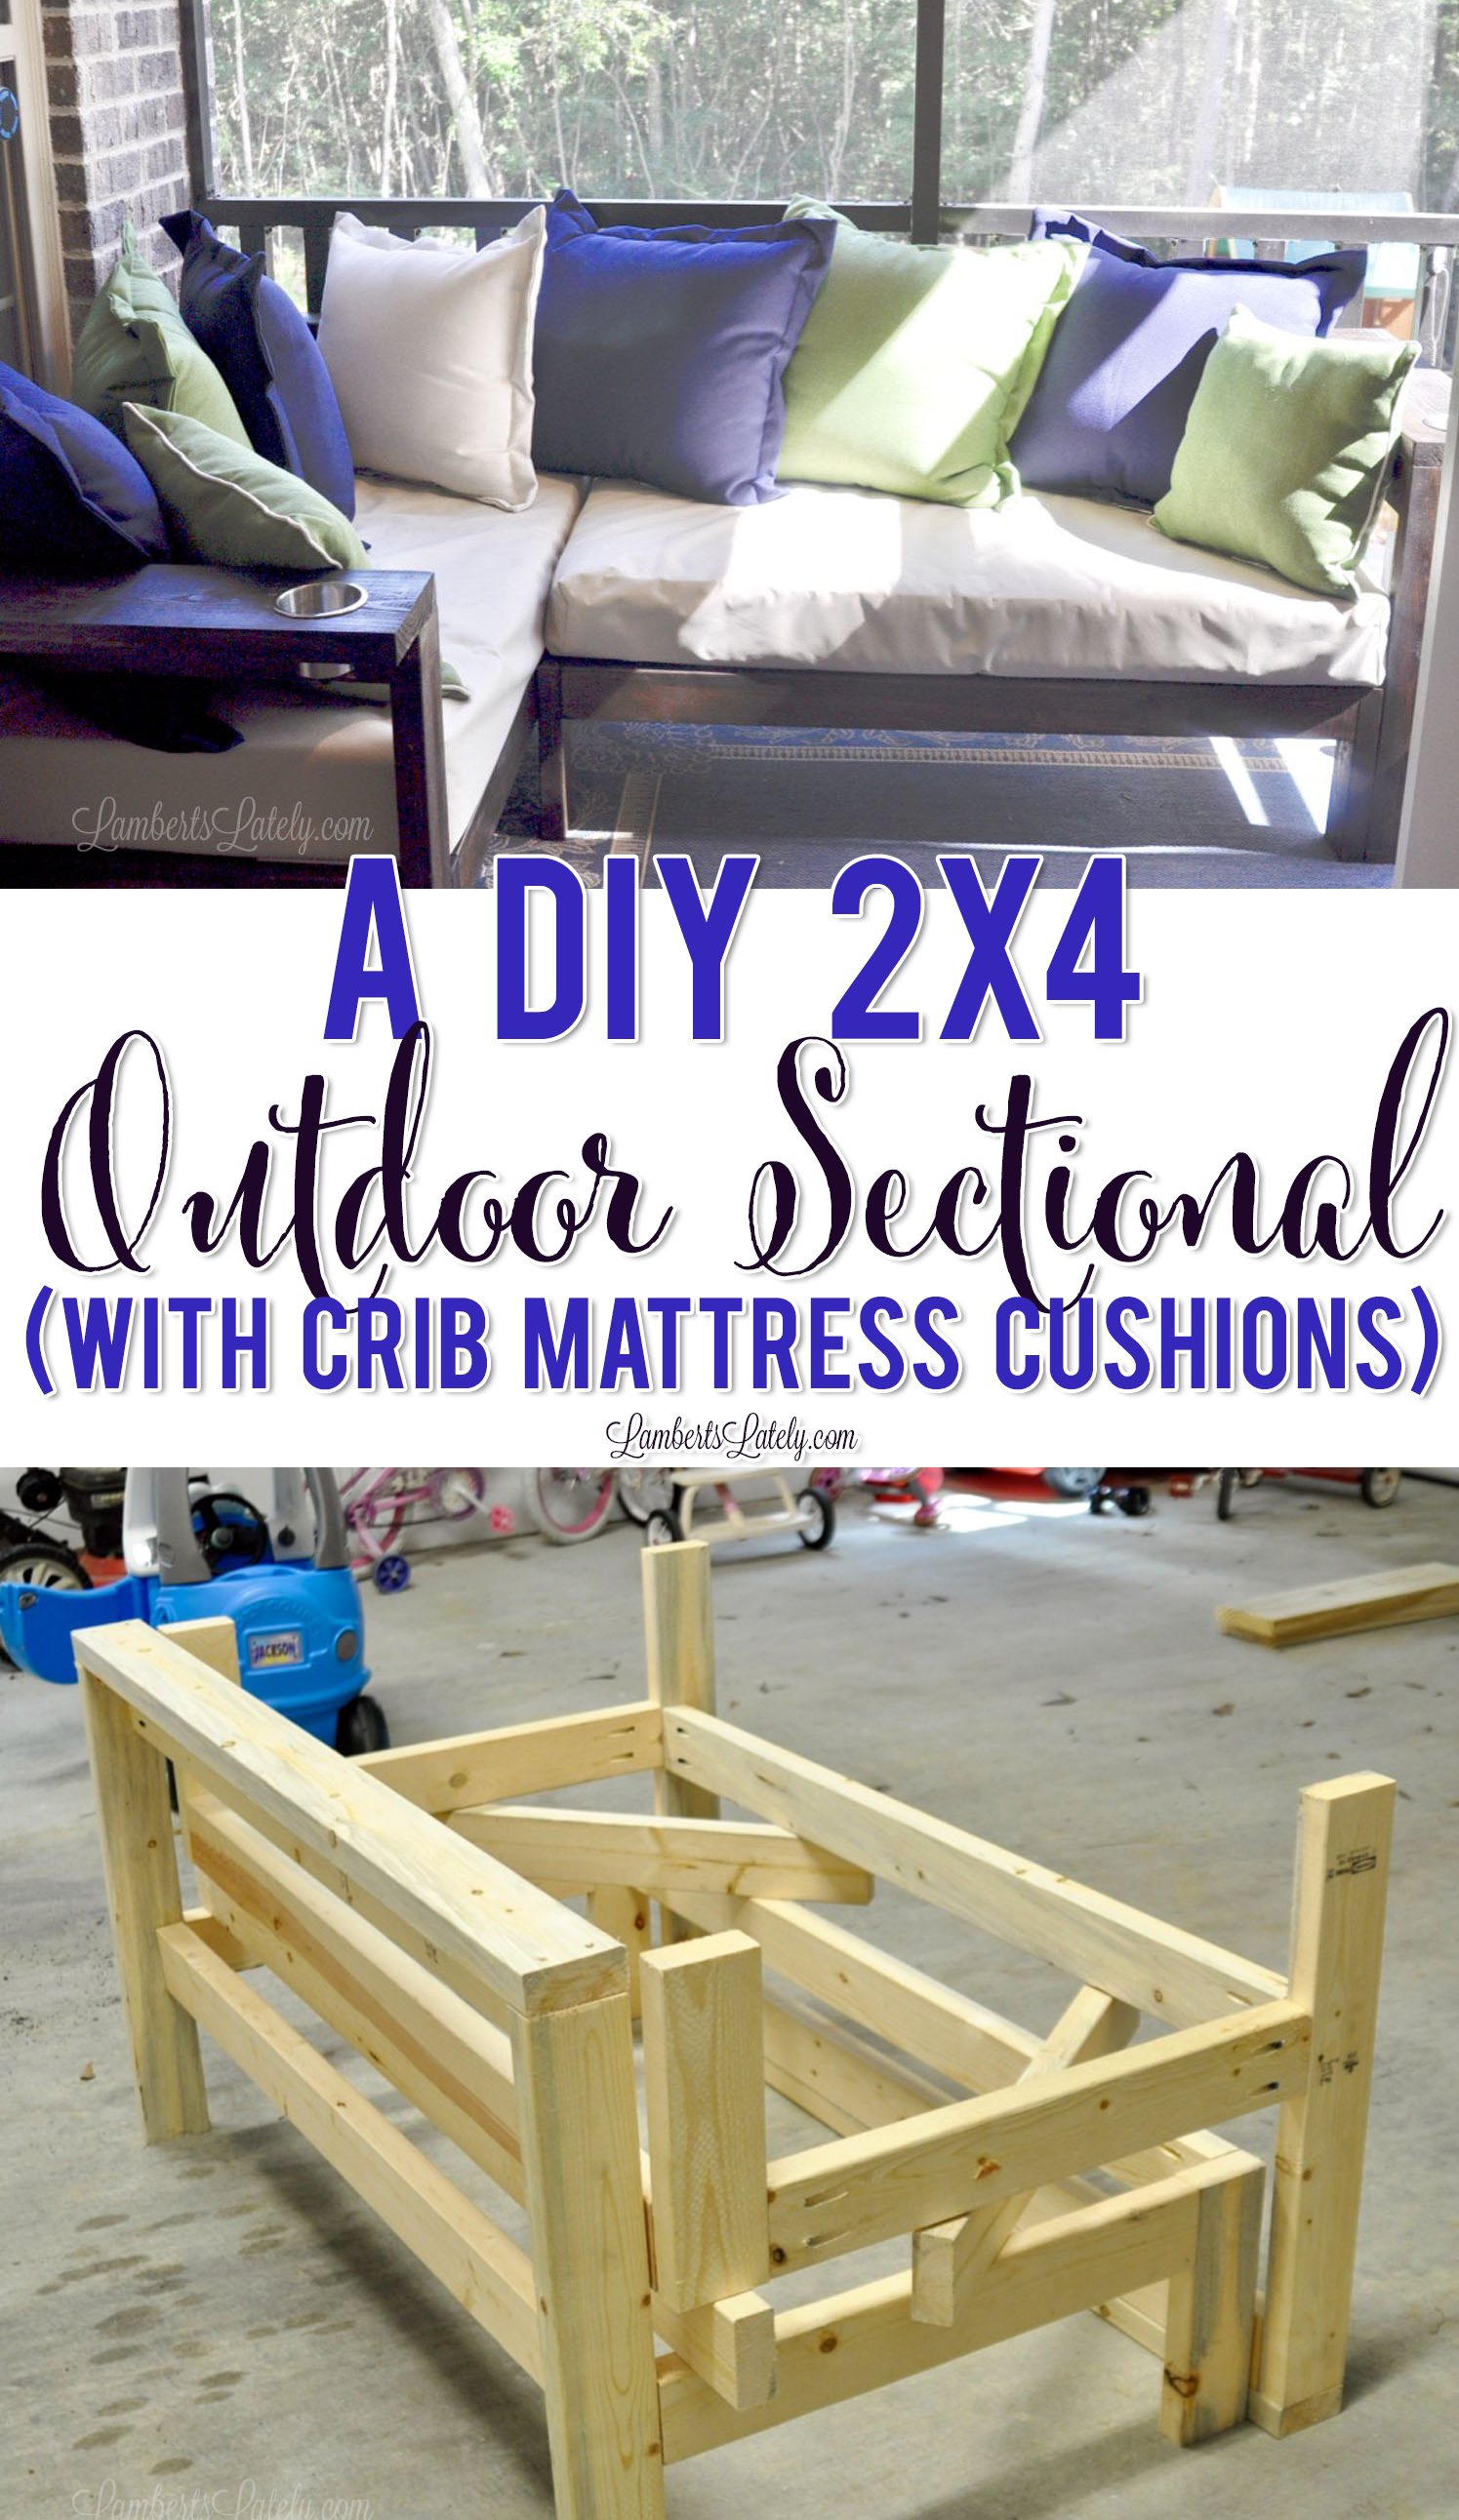 A DIY x Outdoor Sectional with Crib Mattress Cushions